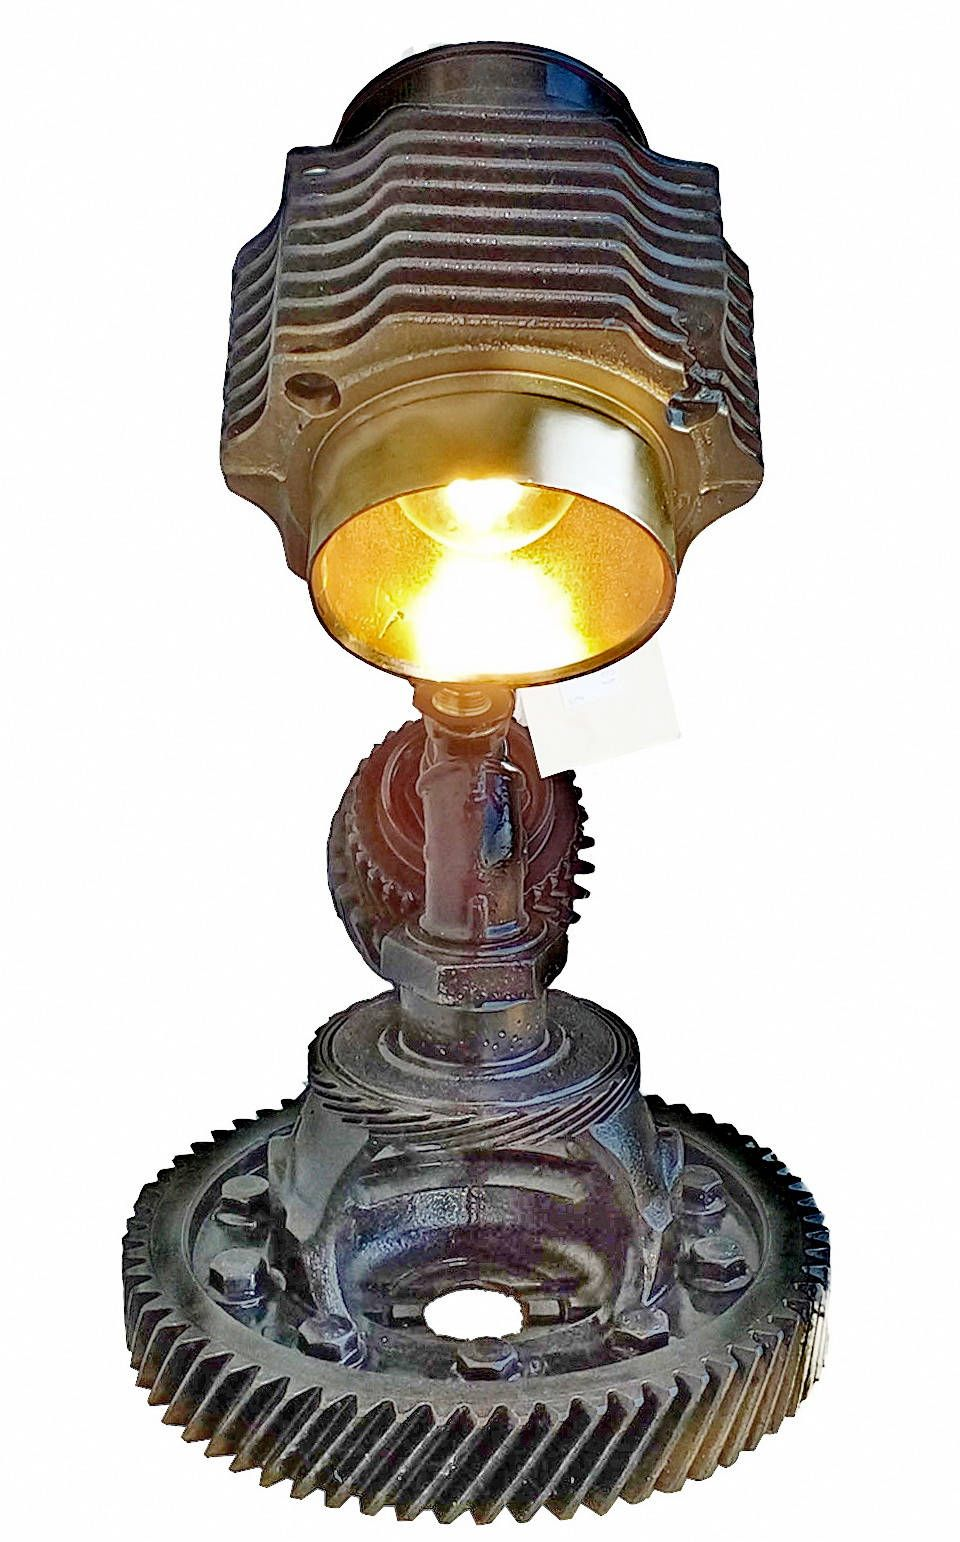 Retro industrial lamp industrial bulb light vintage metal lights retro industrial lamp industrial bulb light vintage metal lights retro light bulb lamp table lamps for aloadofball Image collections